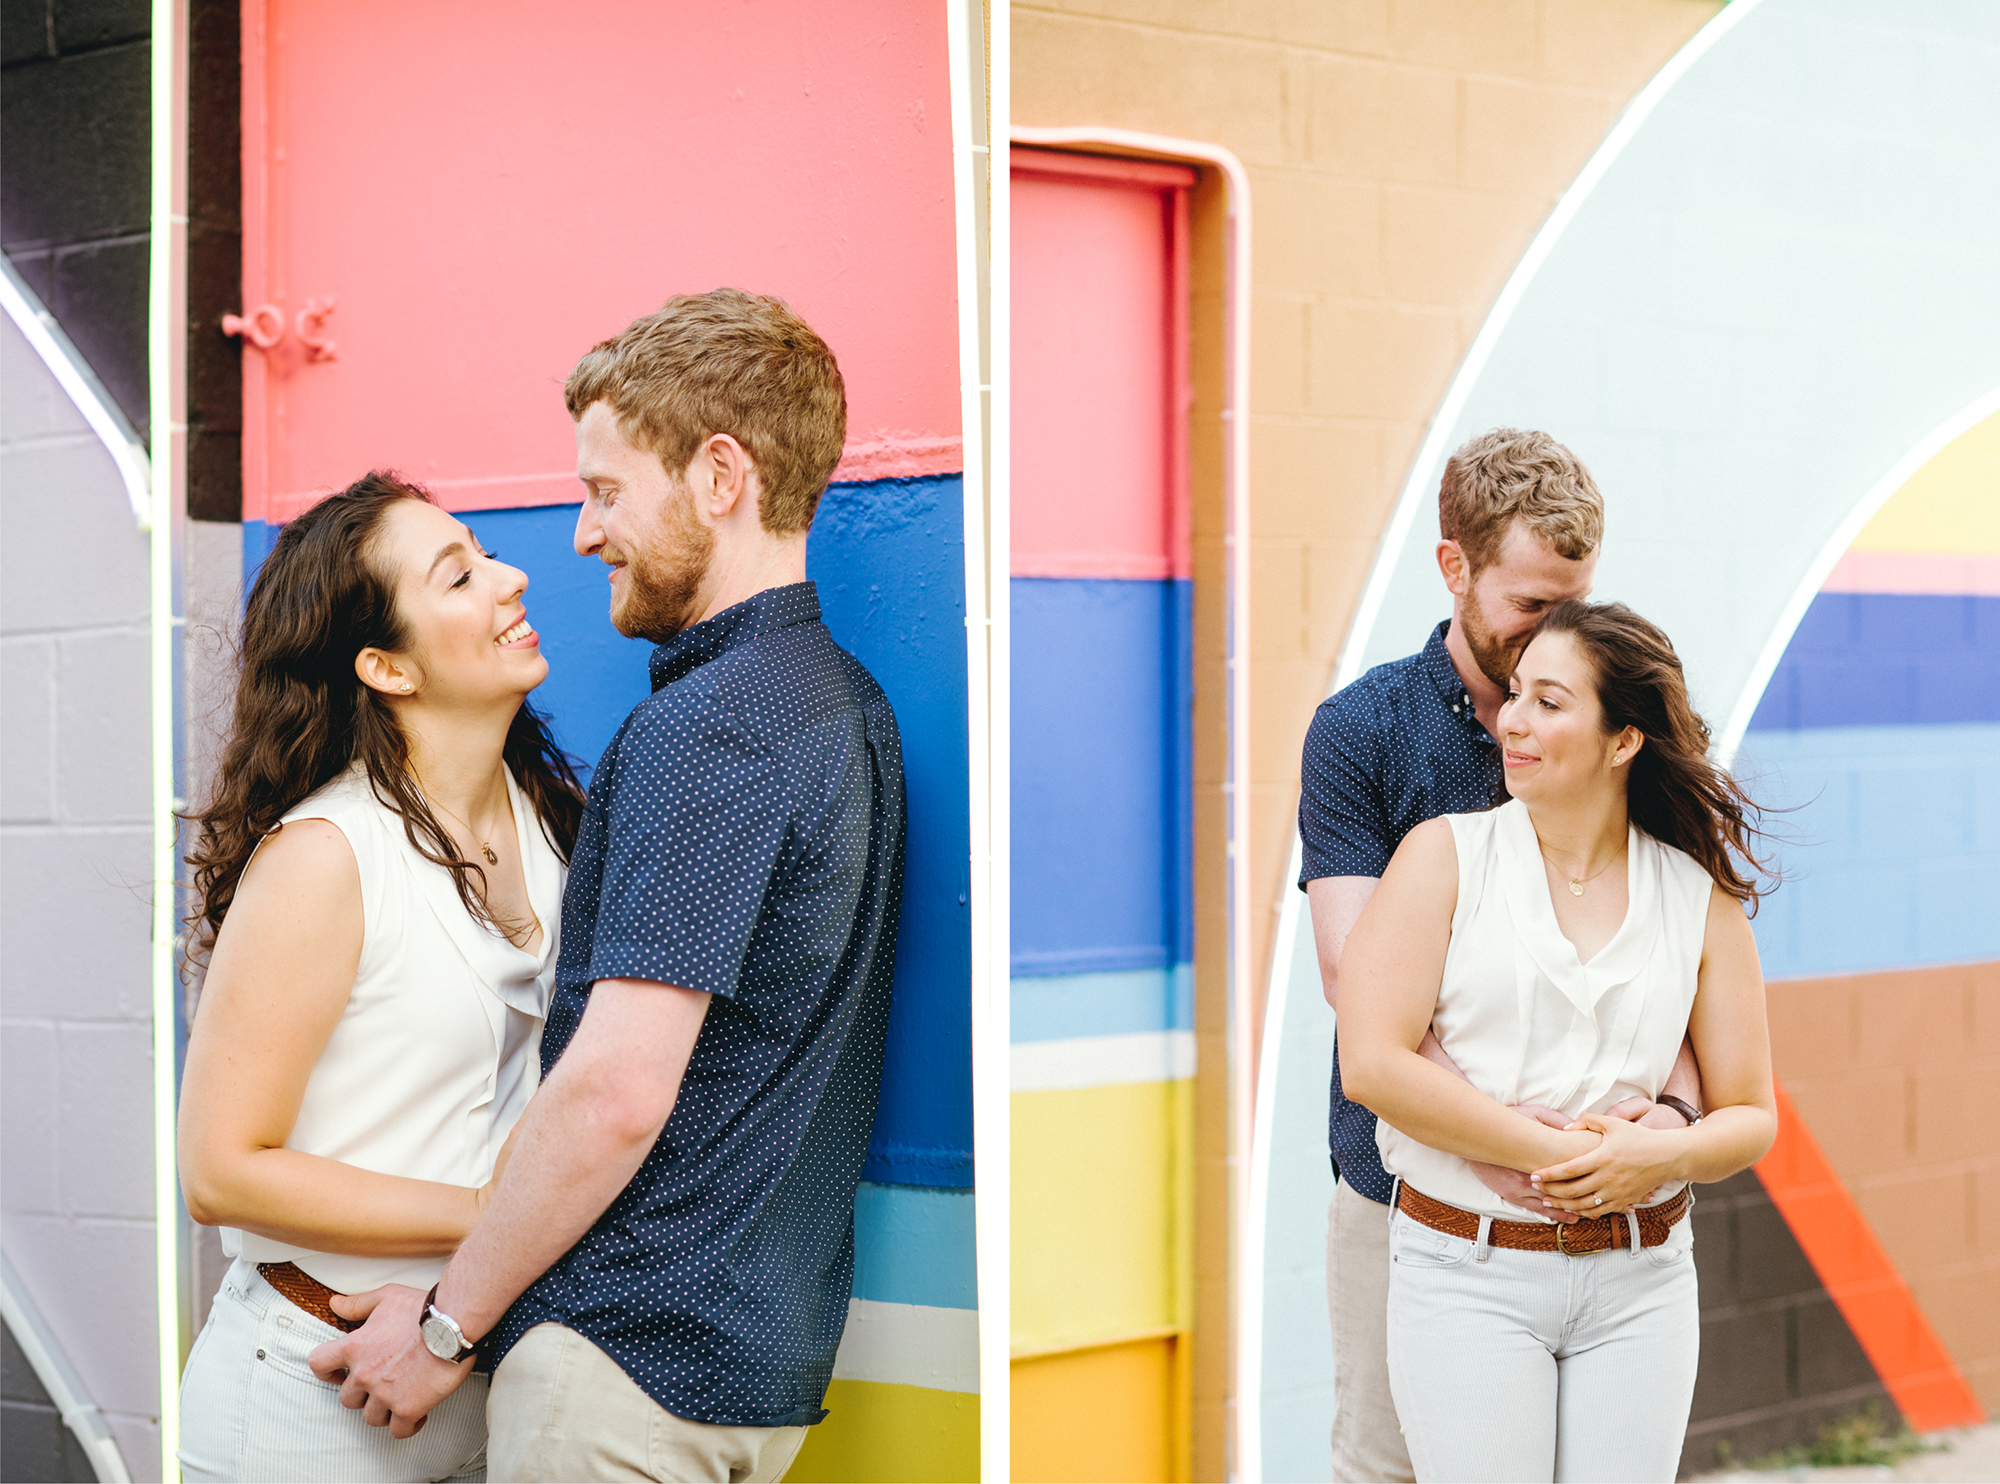 Philadelphia-engagement-photos-neon-mural-philadelphia-wedding-photographer-peaberry-photography-014.jpg